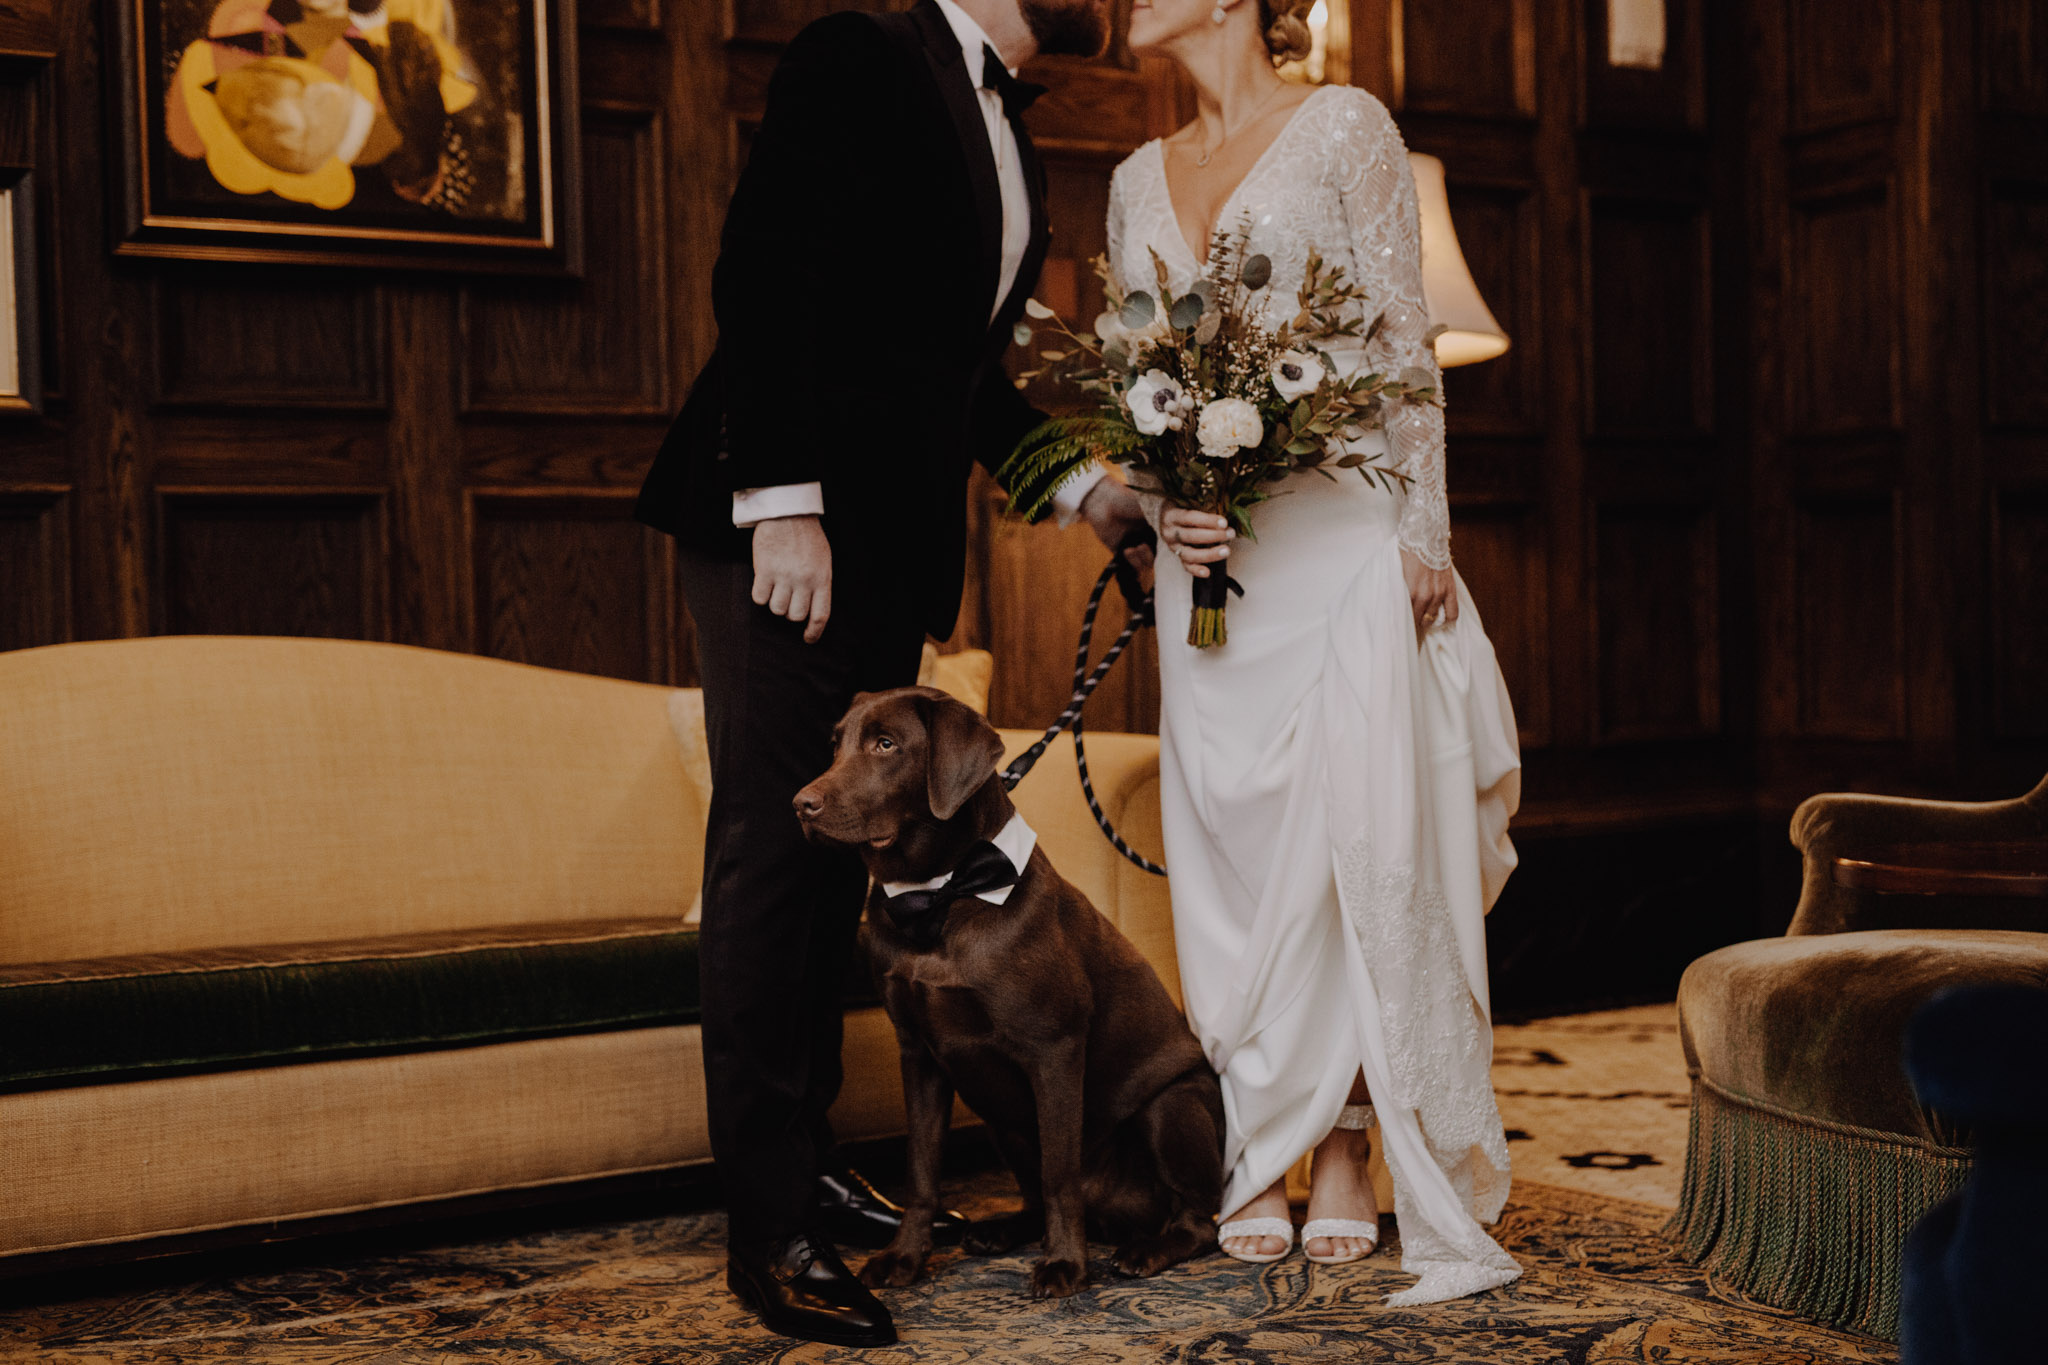 Downtown NYC Wedding - The Beekman Hotel - portrait with their dog